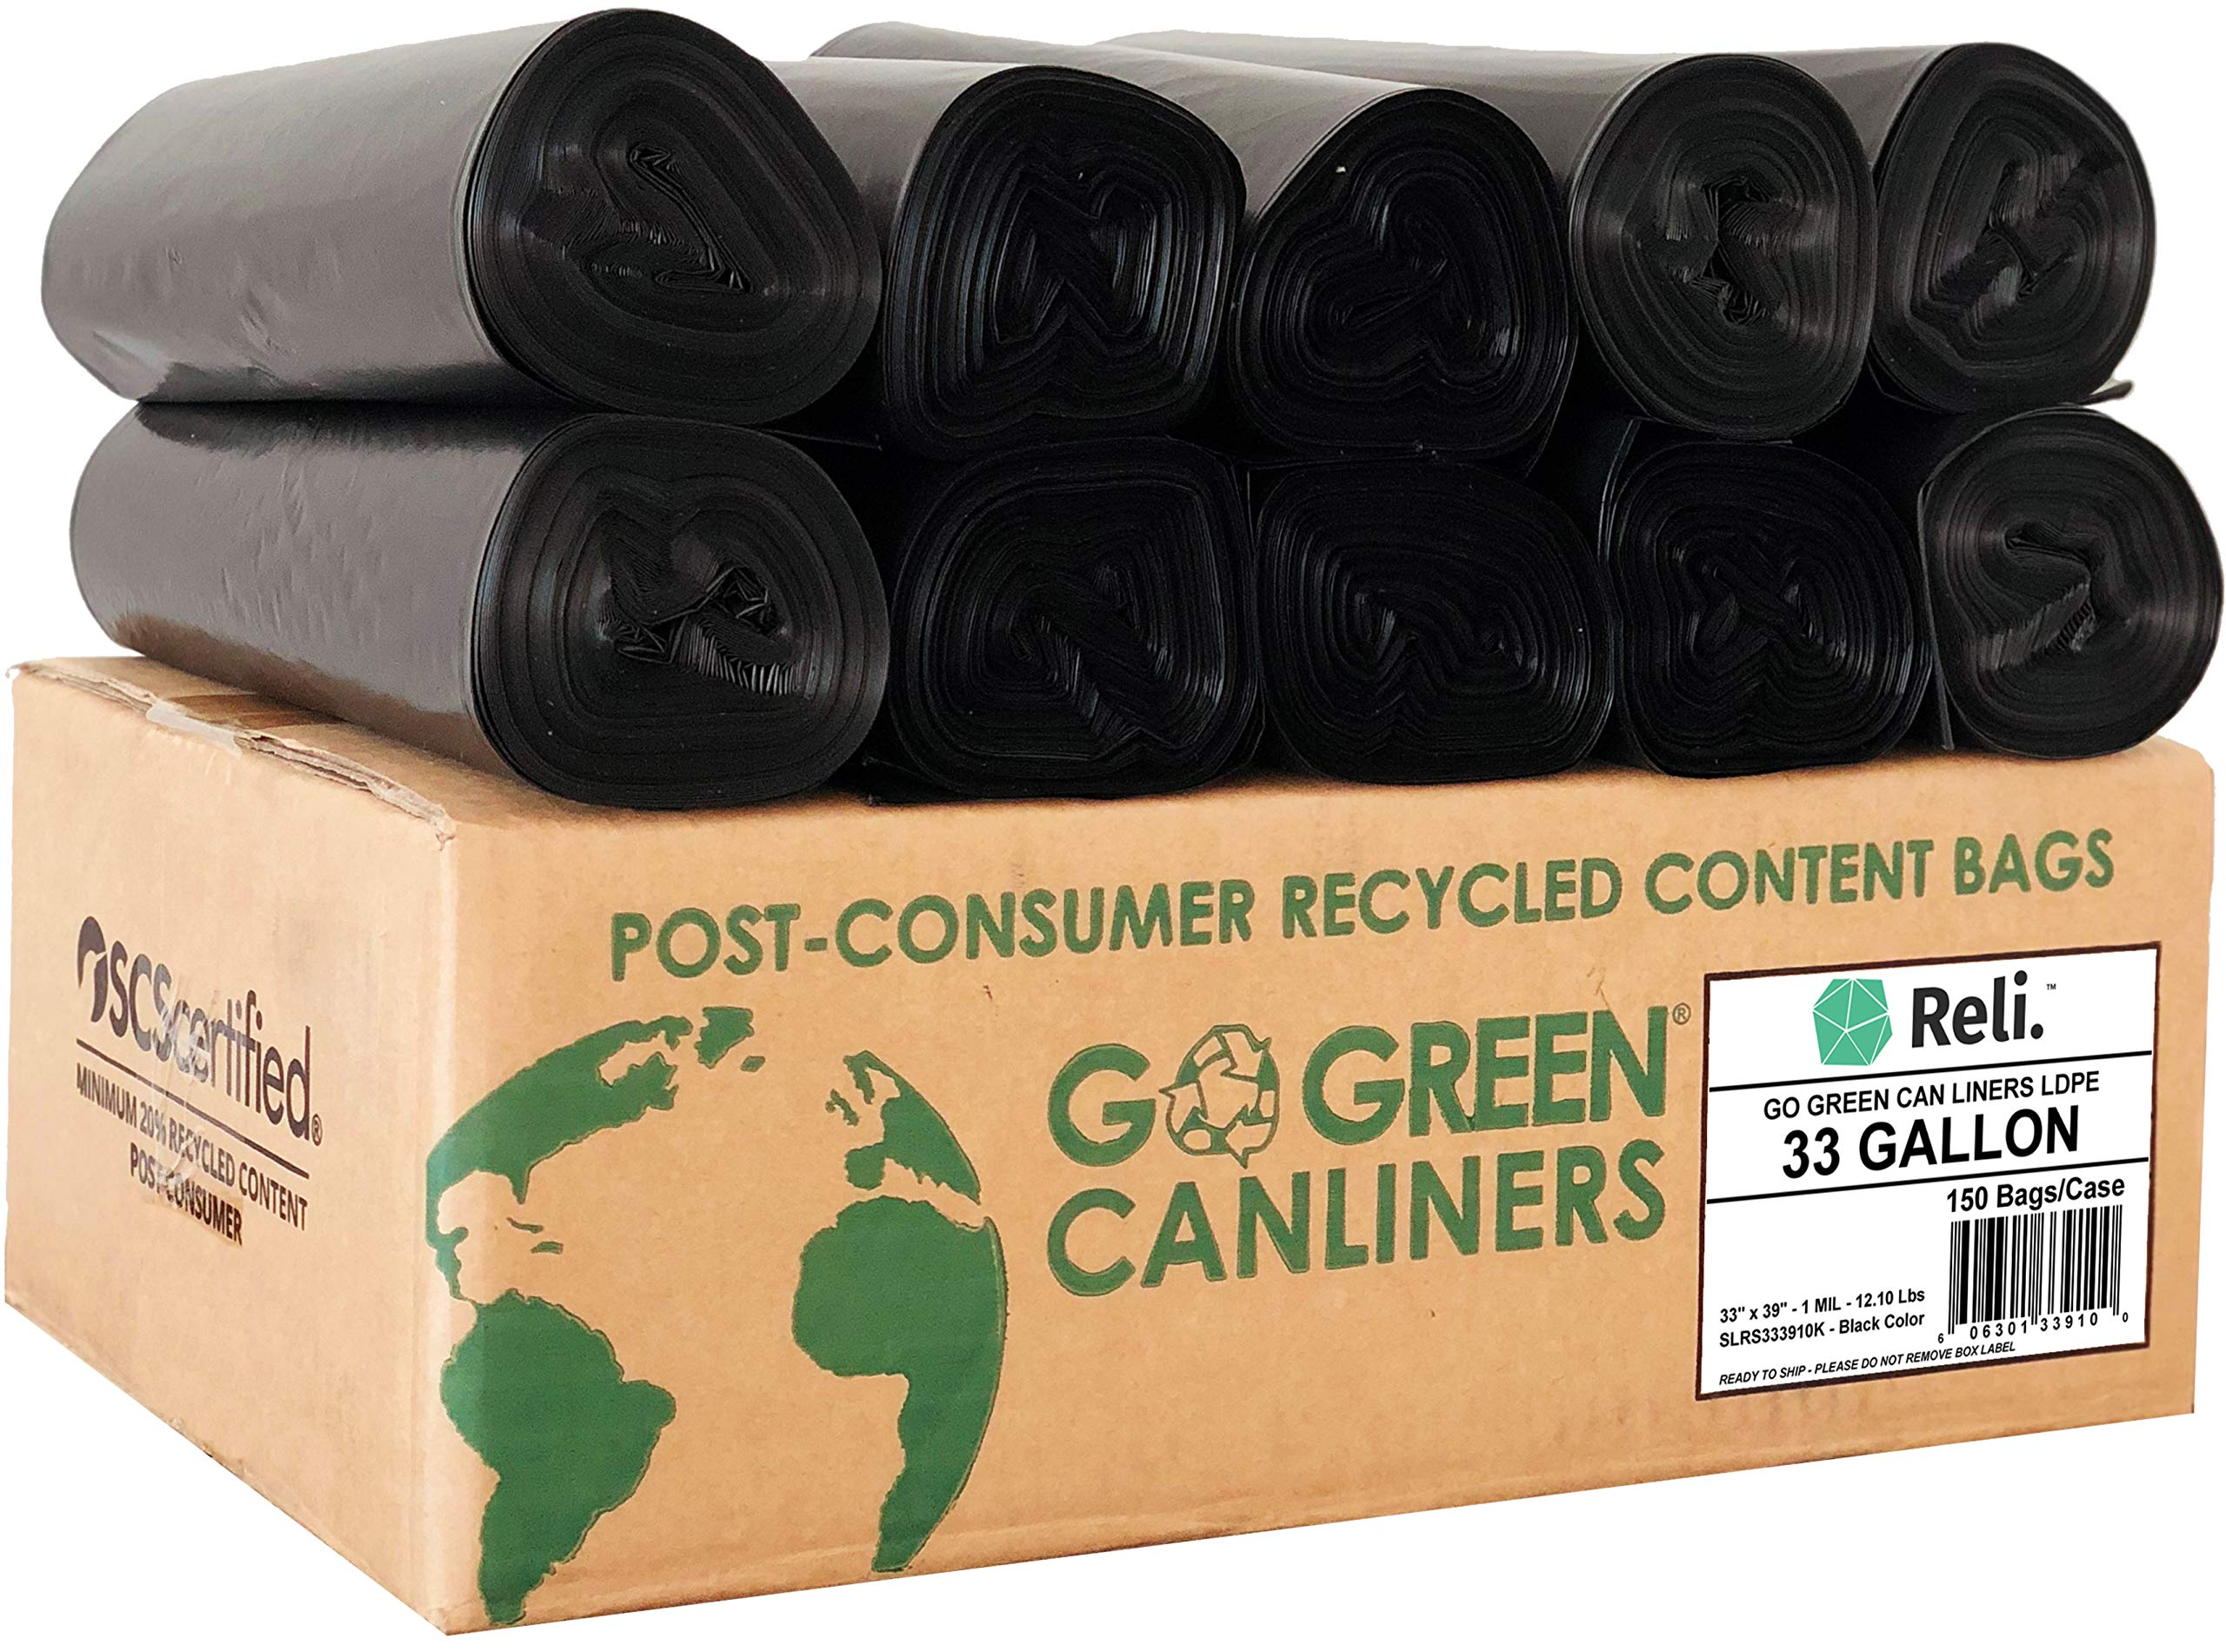 Reli. Eco-Friendly 33 Gallon Trash Bags (150 Count Black) Recyclable Garbage Bags 33 Gallon, Made from Recycled Material - Black 30 Gallon - 35 Gallon Large Capacity (30 Gal - 35 Gal), Recyclable